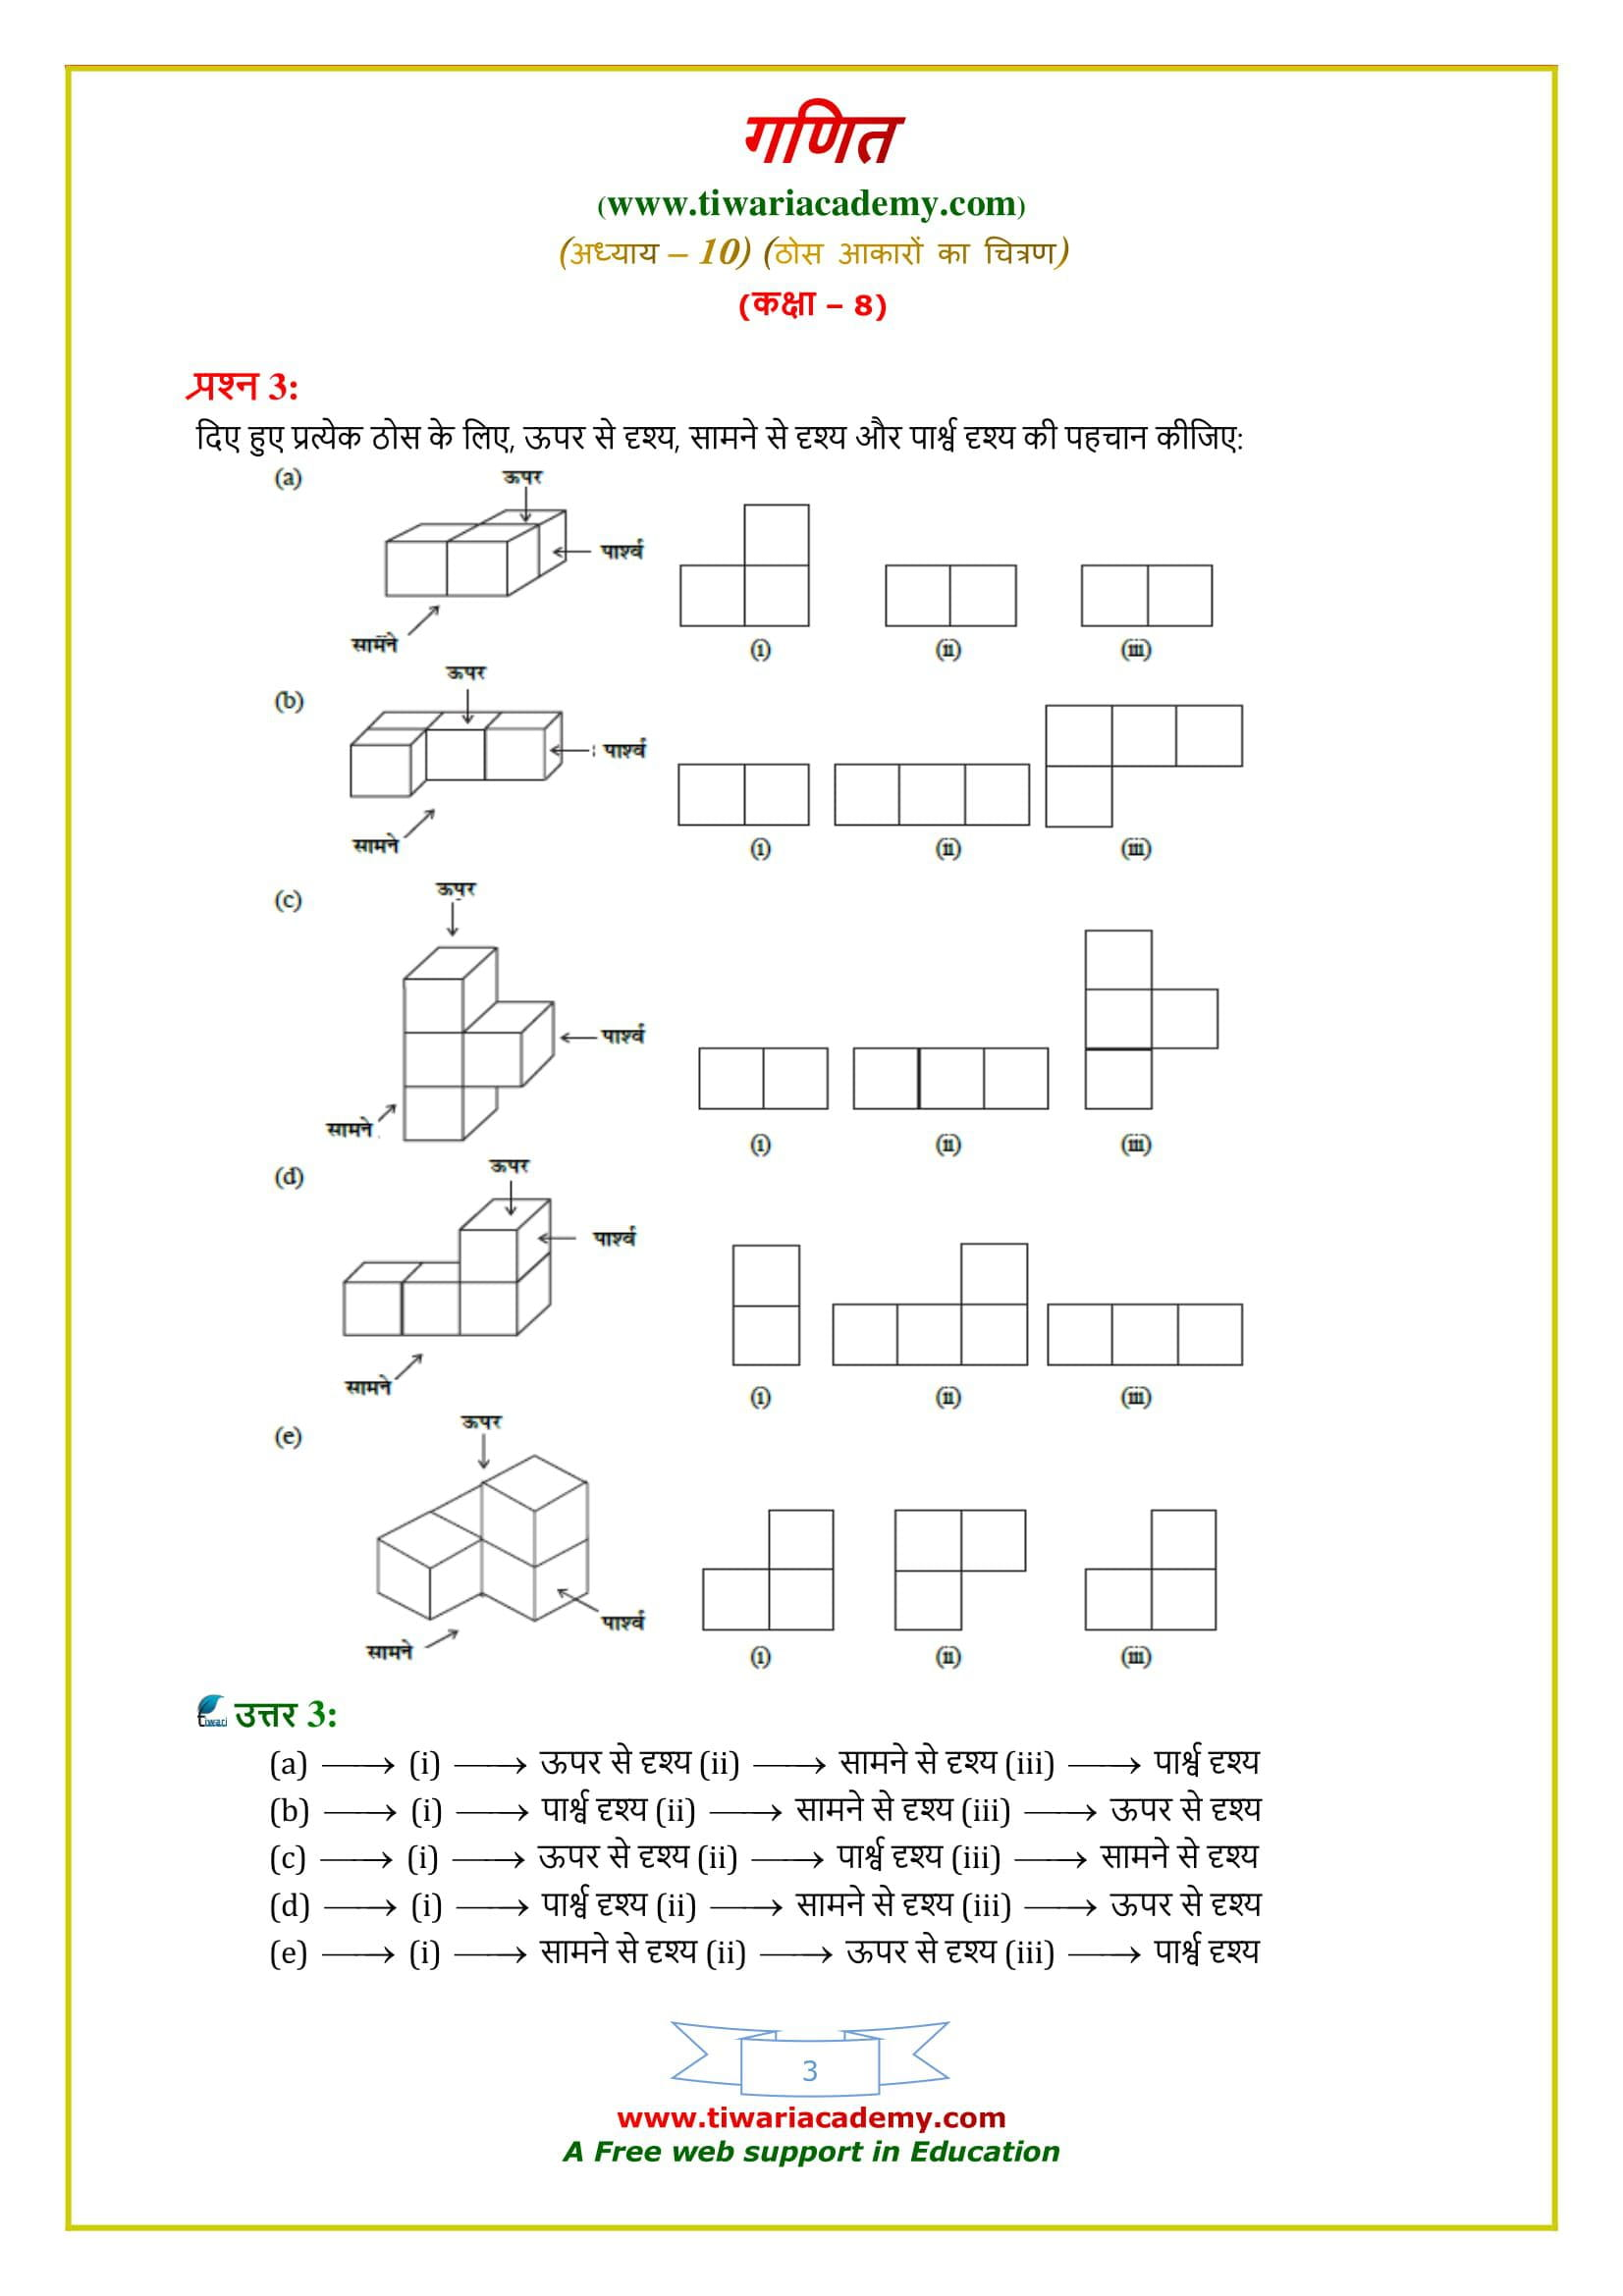 8 Maths Exercise 10.1 solutions updated form for 2018-19 mp cbse board